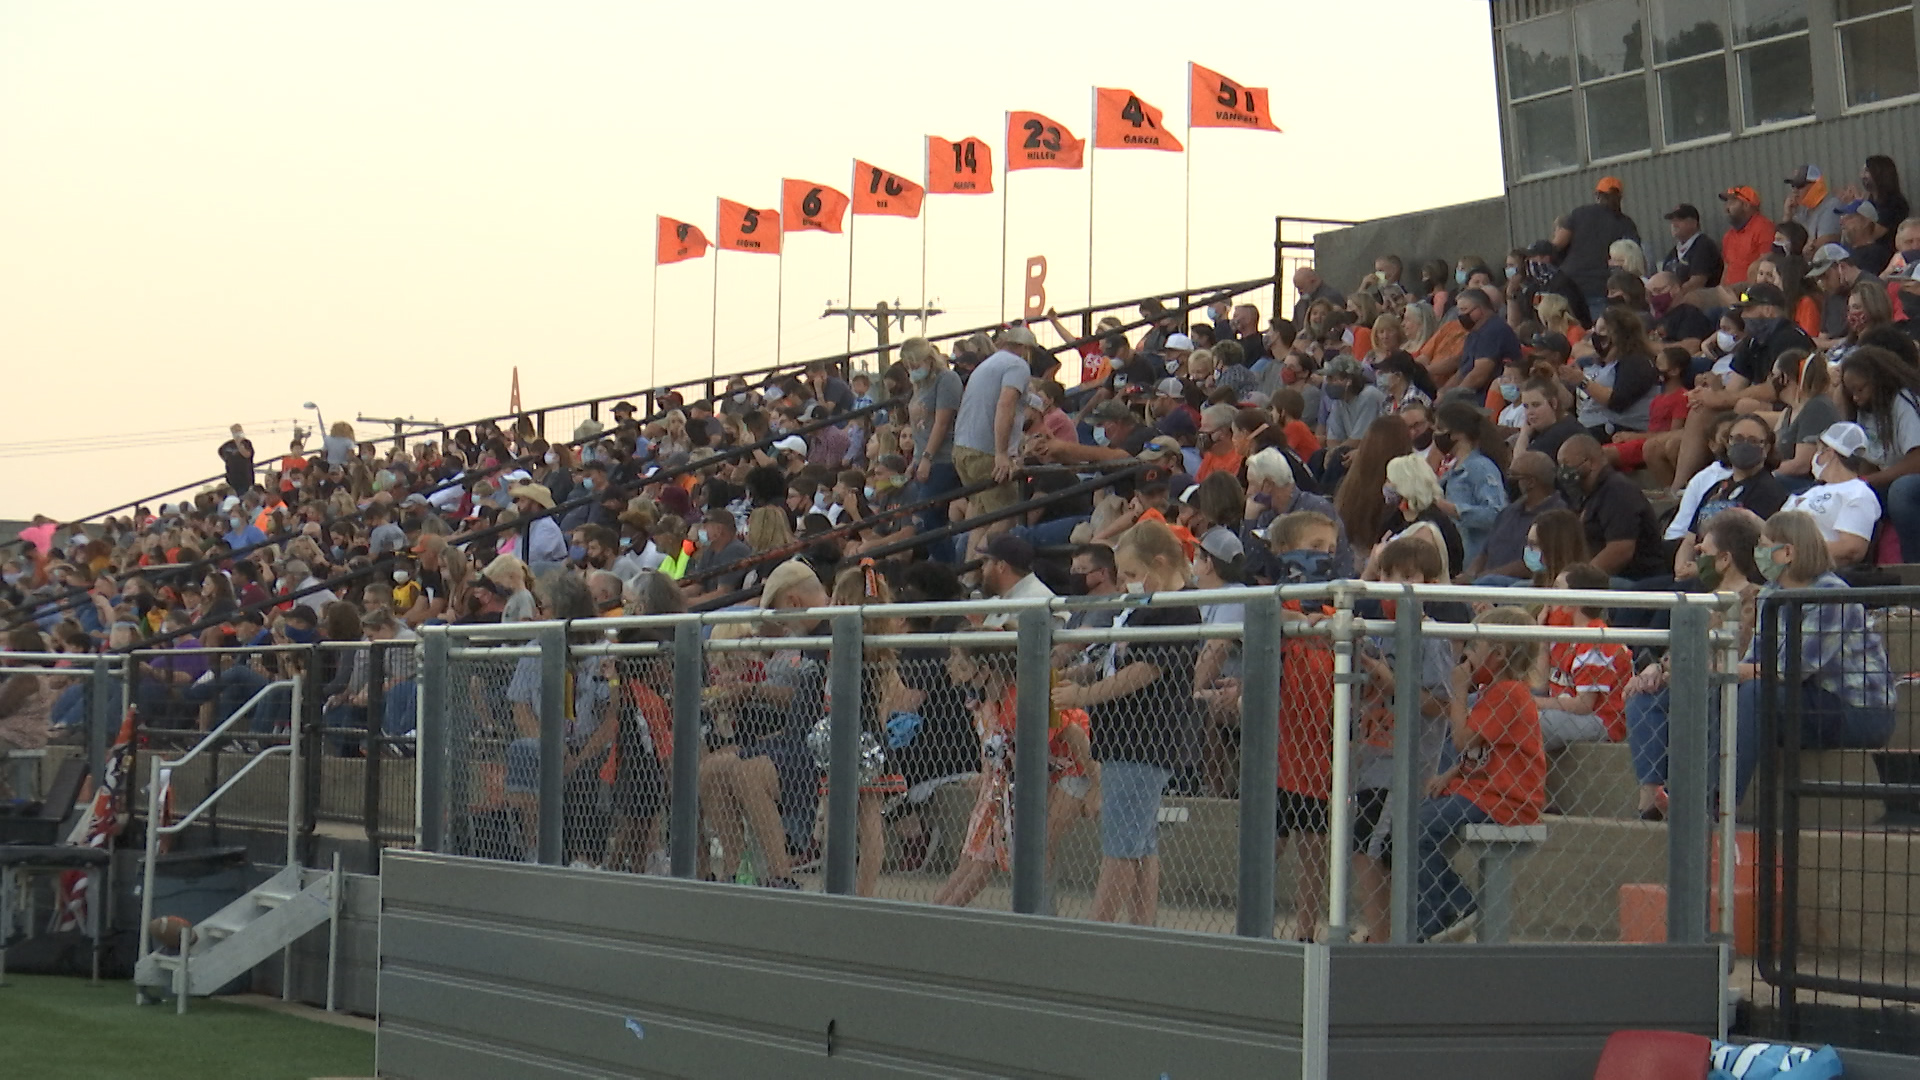 Social media lit up this weekend with some parents and spectators who were not happy with the lack of mask enforcement at Friday's Burkburnett Bulldogs Homecoming game.